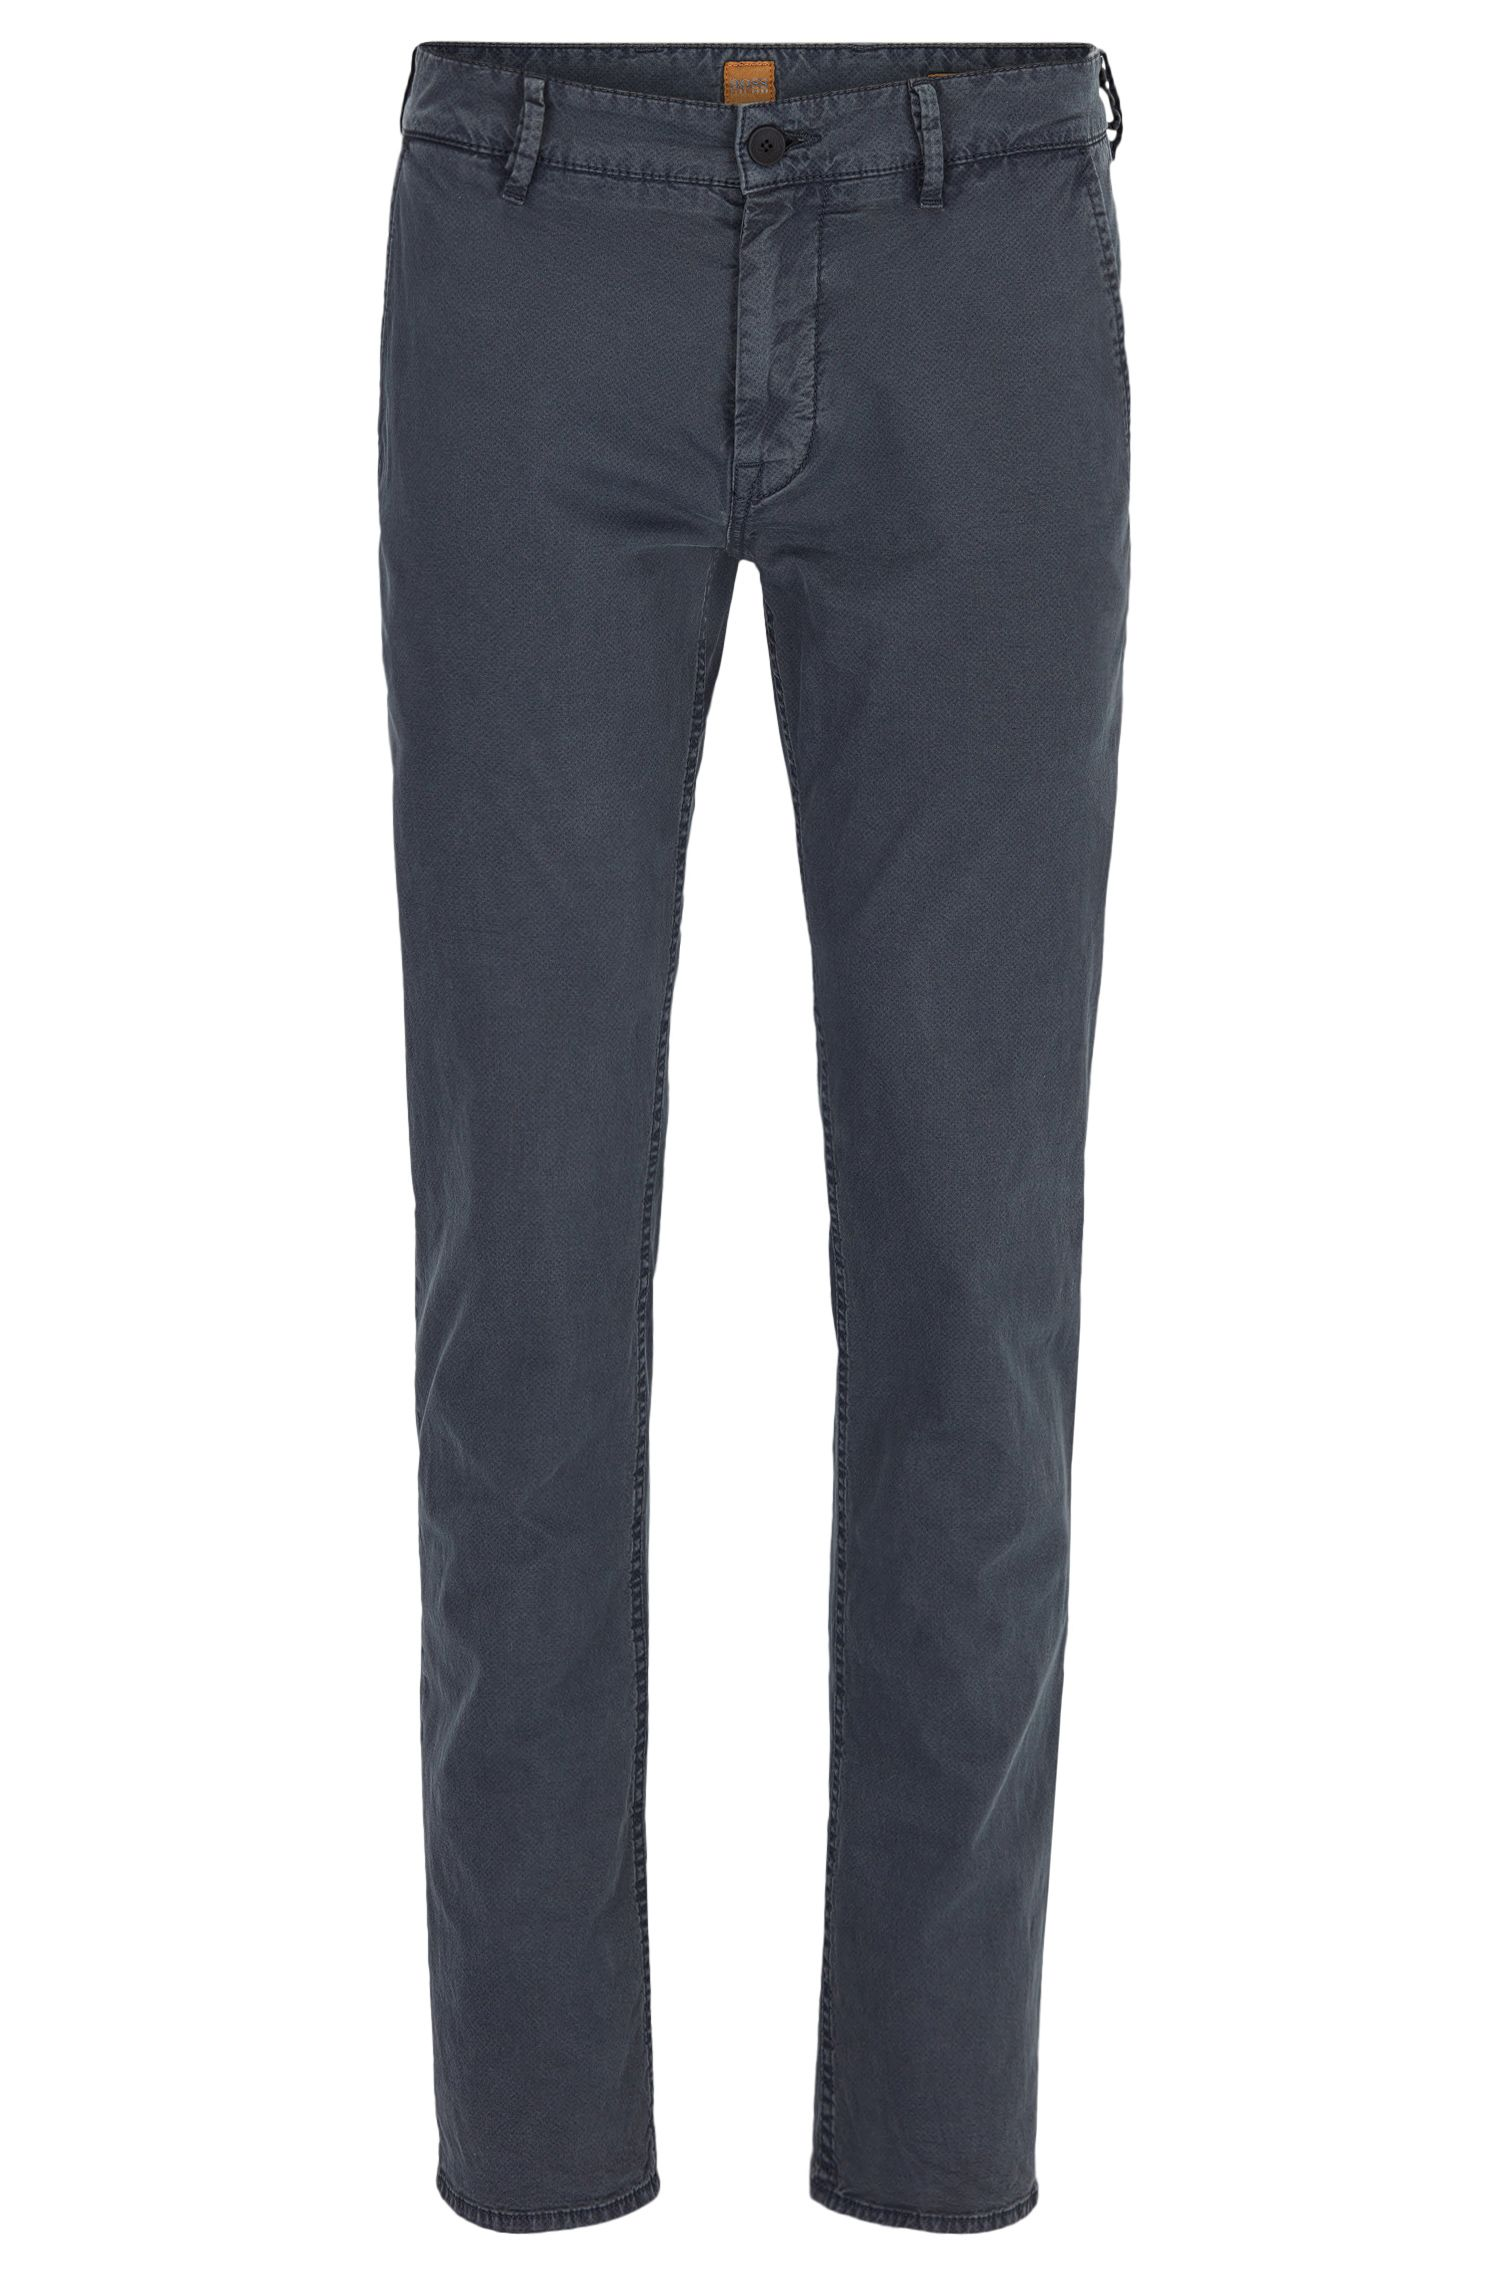 Pantalon Slim Fit en coton italien stretch